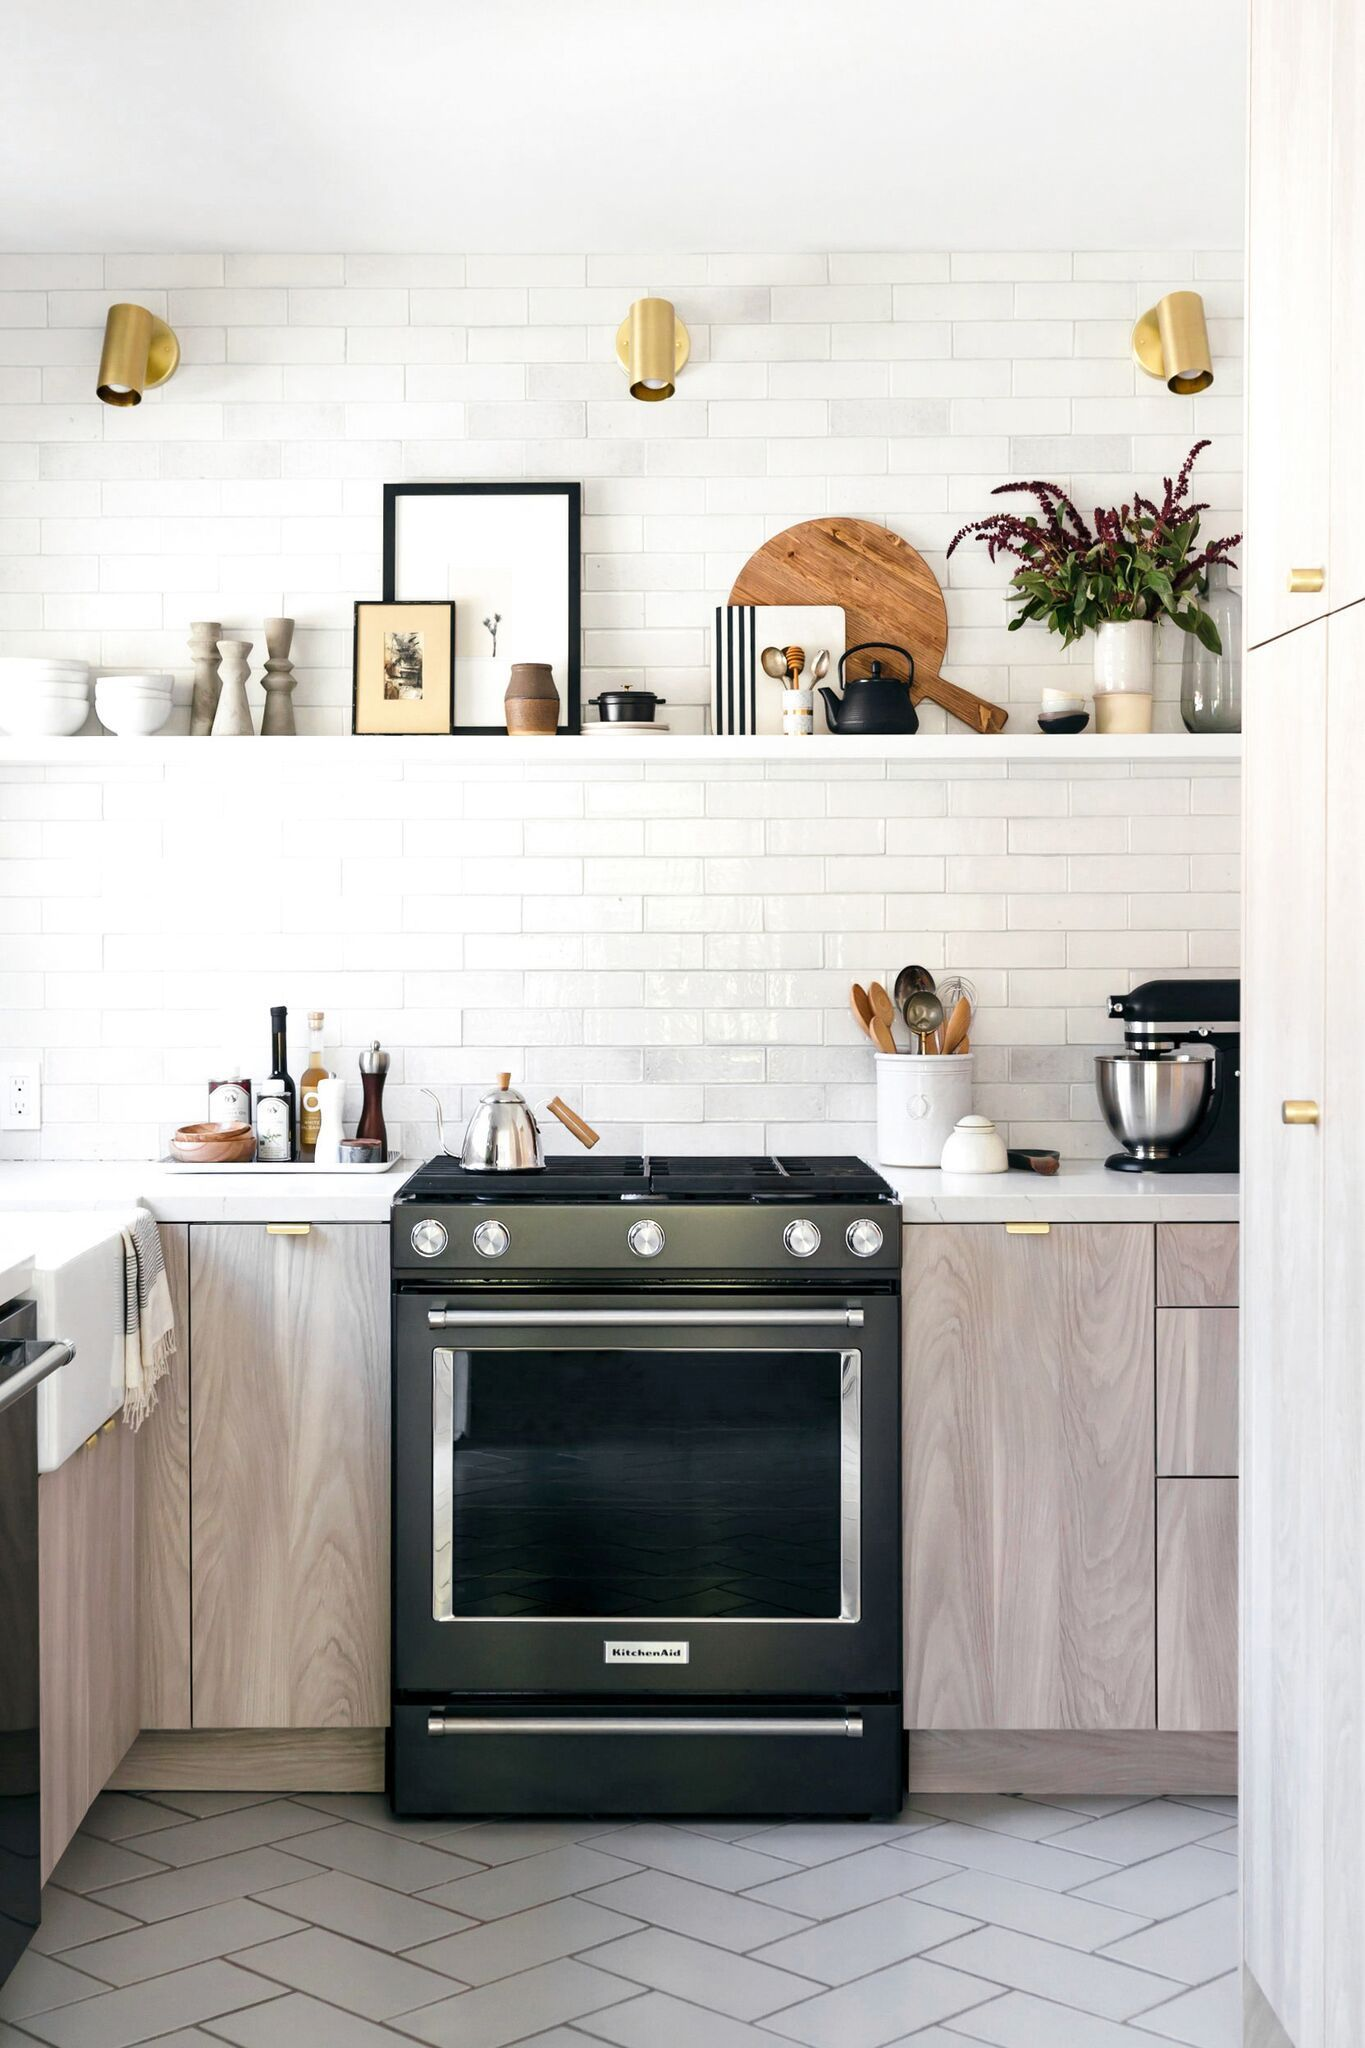 Amazing SemiHandMade IKEA Kitchens - Interior design kitchen, Trendy kitchen tile, Kitchen interior, Kitchen design small, Upper kitchen cabinets, Custom cabinet doors - SemiHandMade is a company that helps you beautifully transform IKEA furniture and kitchens into a space that feels and looks like it was custom built